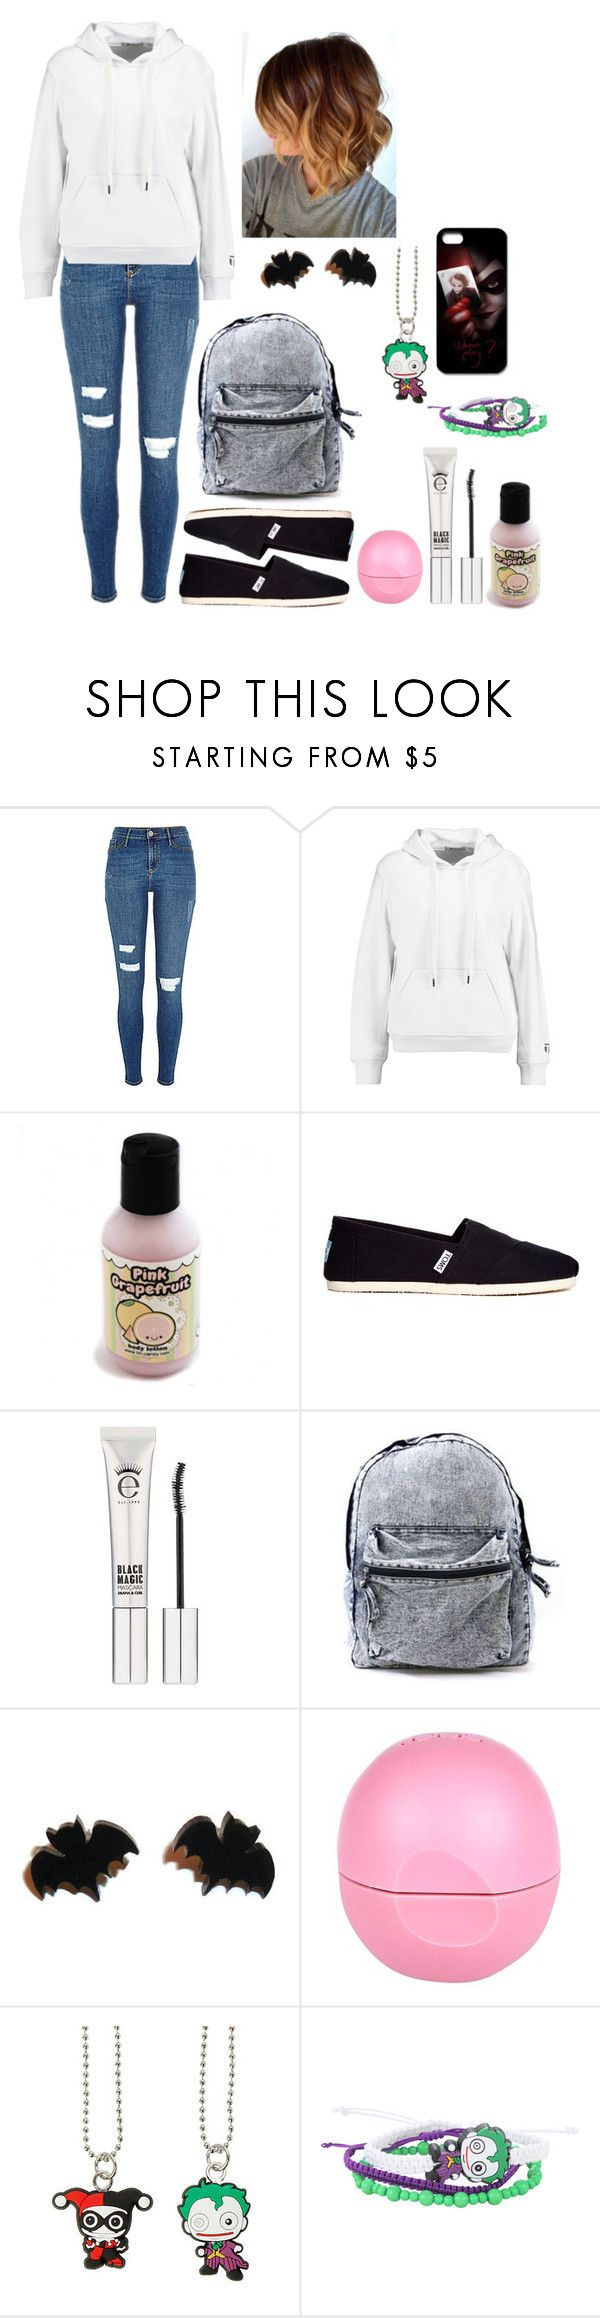 """""""Six flags day 1"""" by axelyamary ❤ liked on Polyvore featuring T By Alexander Wang, TOMS, Eyeko and River Island"""